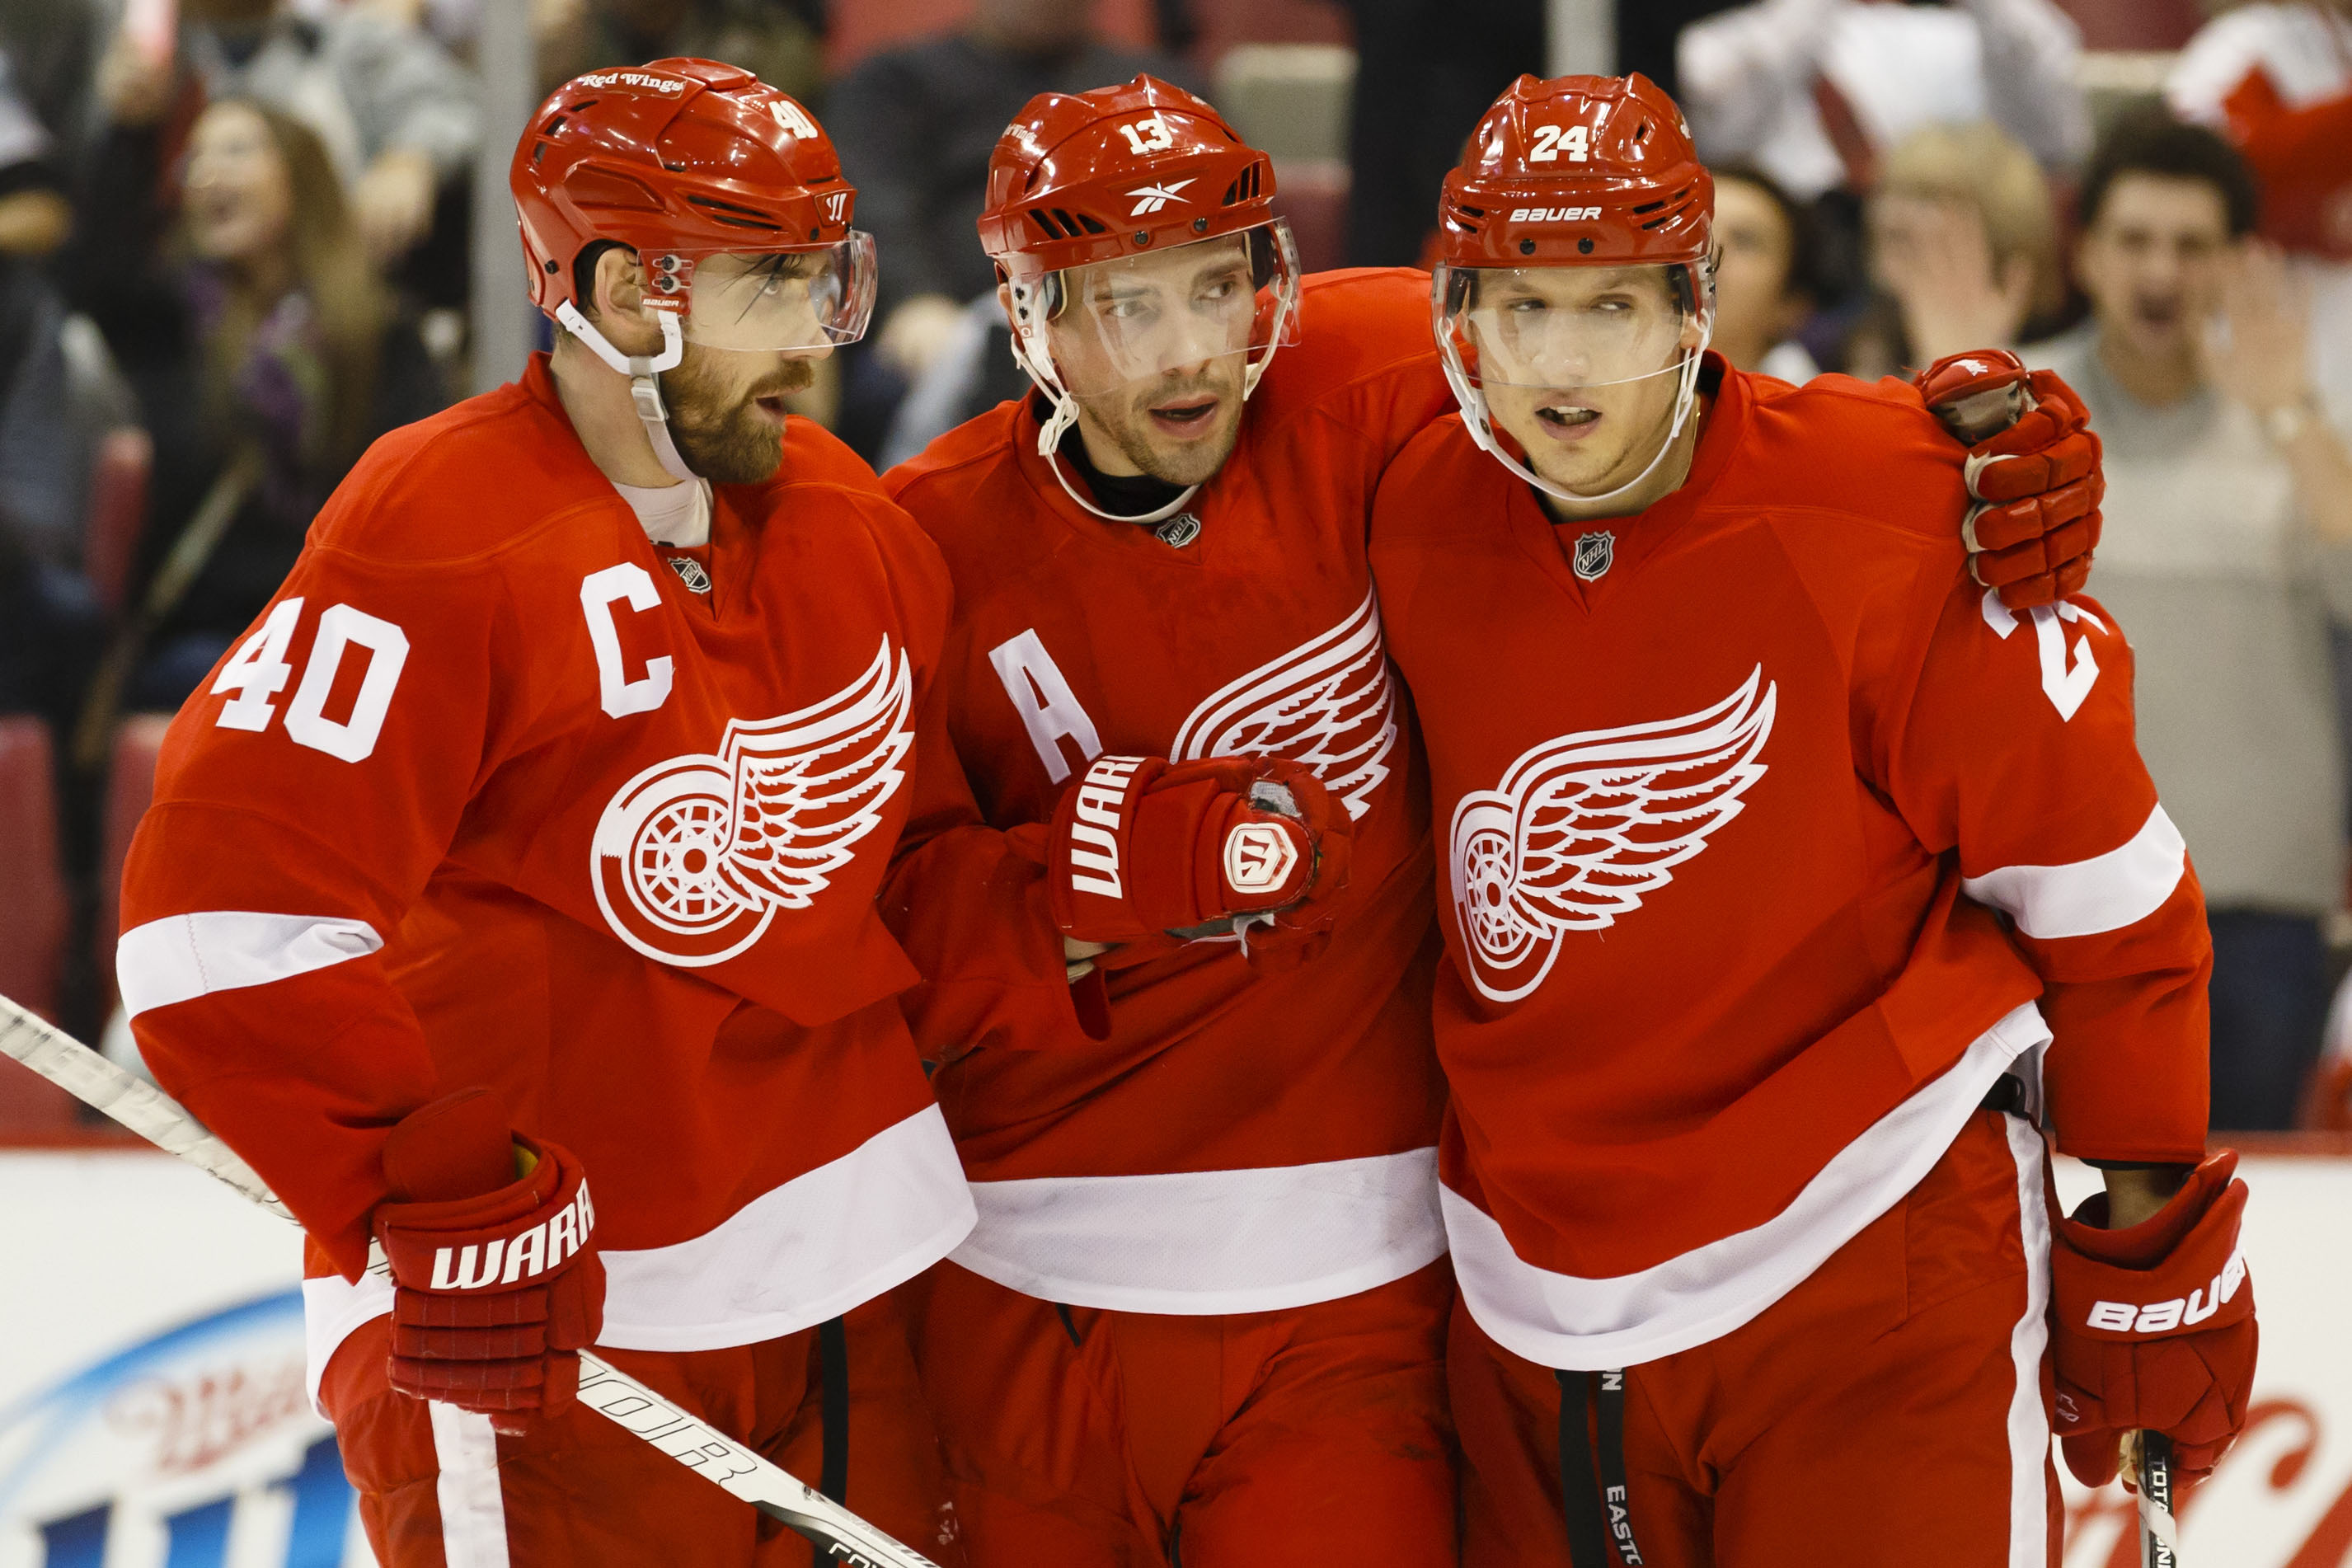 Henrik Zetterberg and Pavel Datsyuk welcome Damien Brunner (L-R) to Detroit. (USA Today)